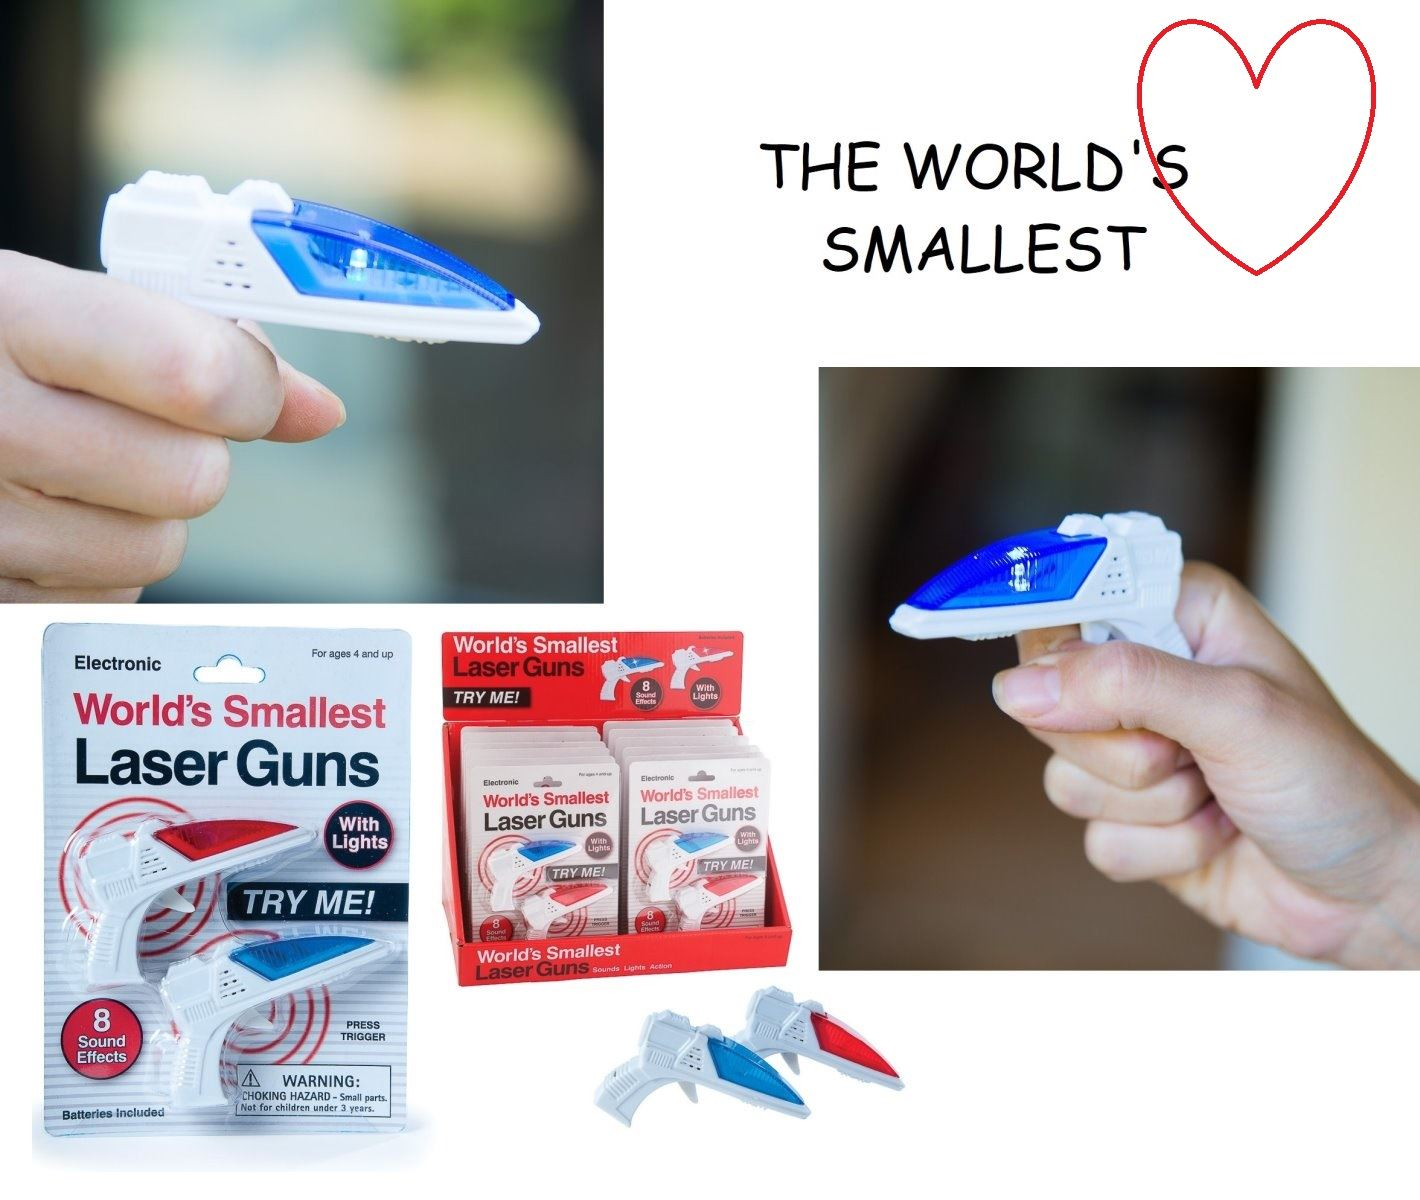 The-Worlds-Smallest-Toys-Gadgets-Novelty-Gift-Fun thumbnail 9